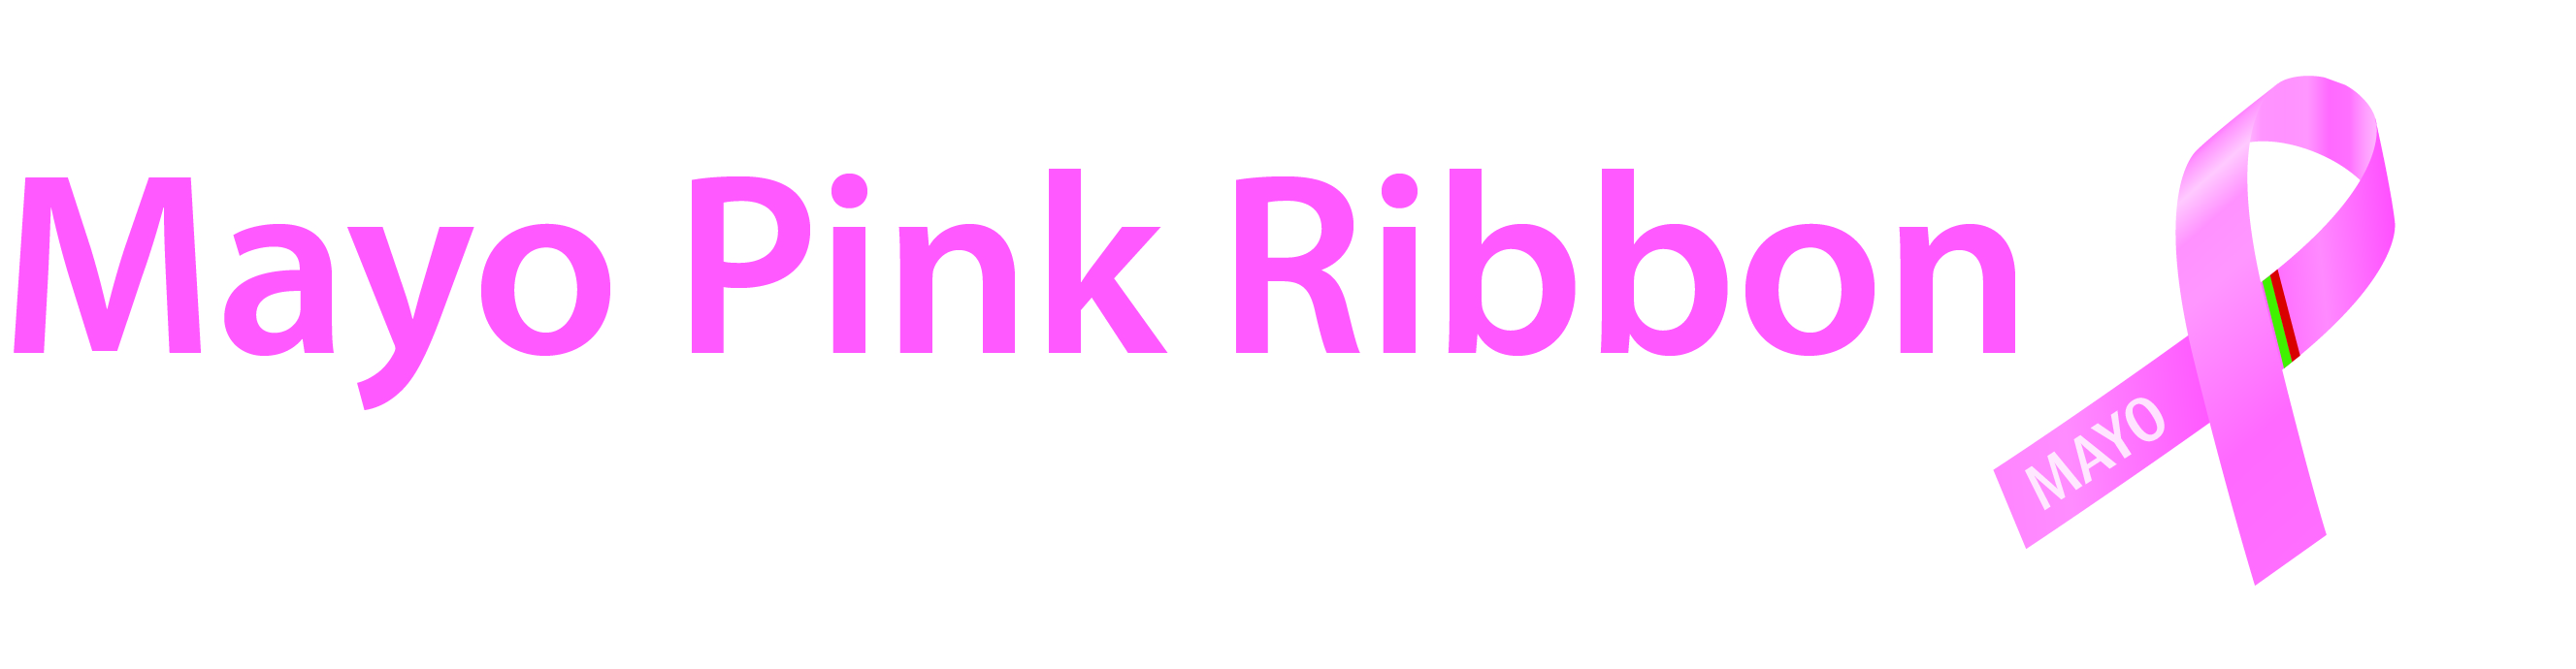 Right-Ribbon-with-text.jpg